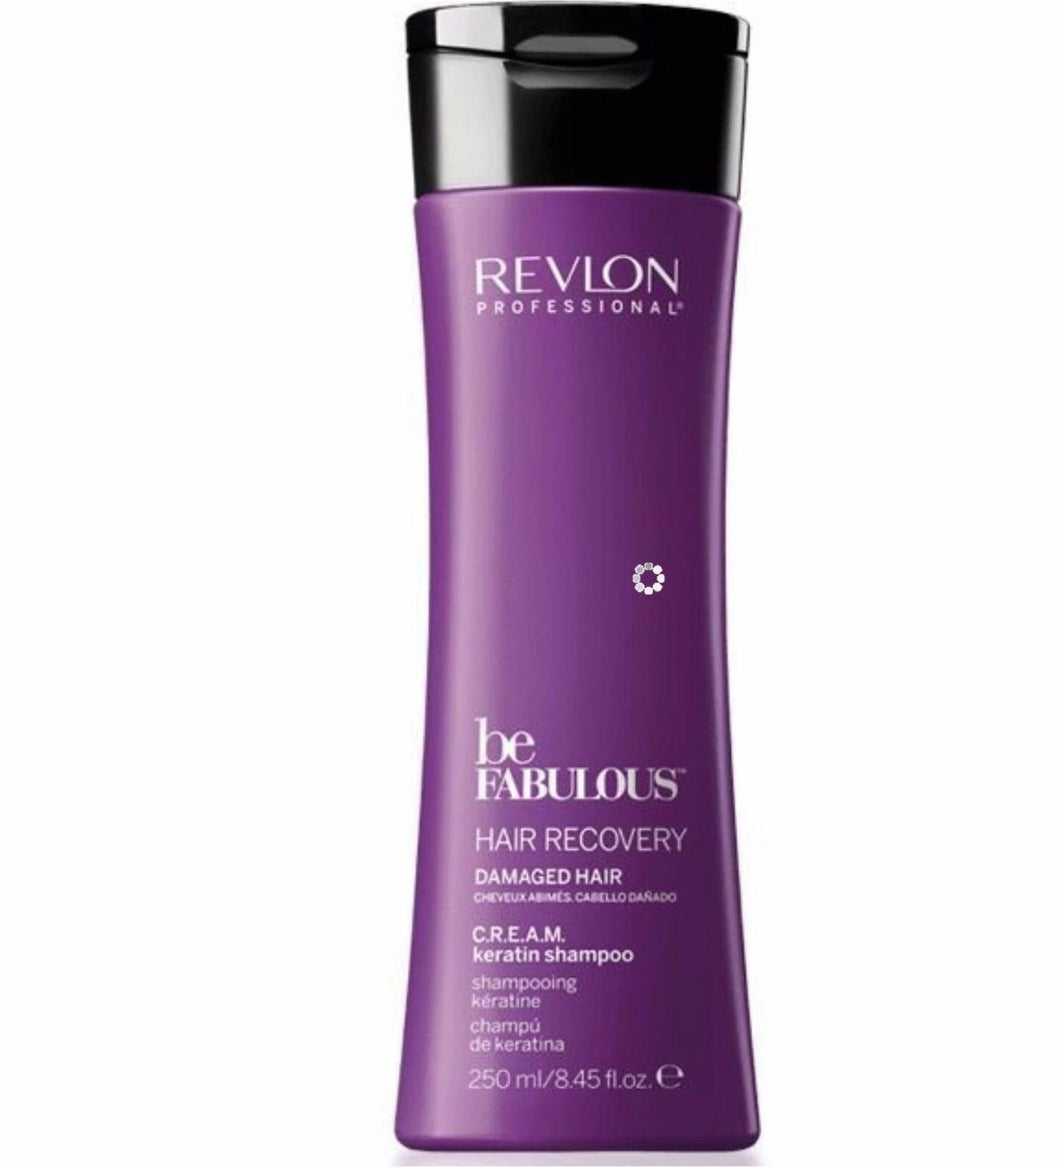 iaahhaircare,Revlon Professional Be Fabulous Damaged Hair Recovery C.R.E.A.M Shampoo,Shampoos & Conditioners,Revlon